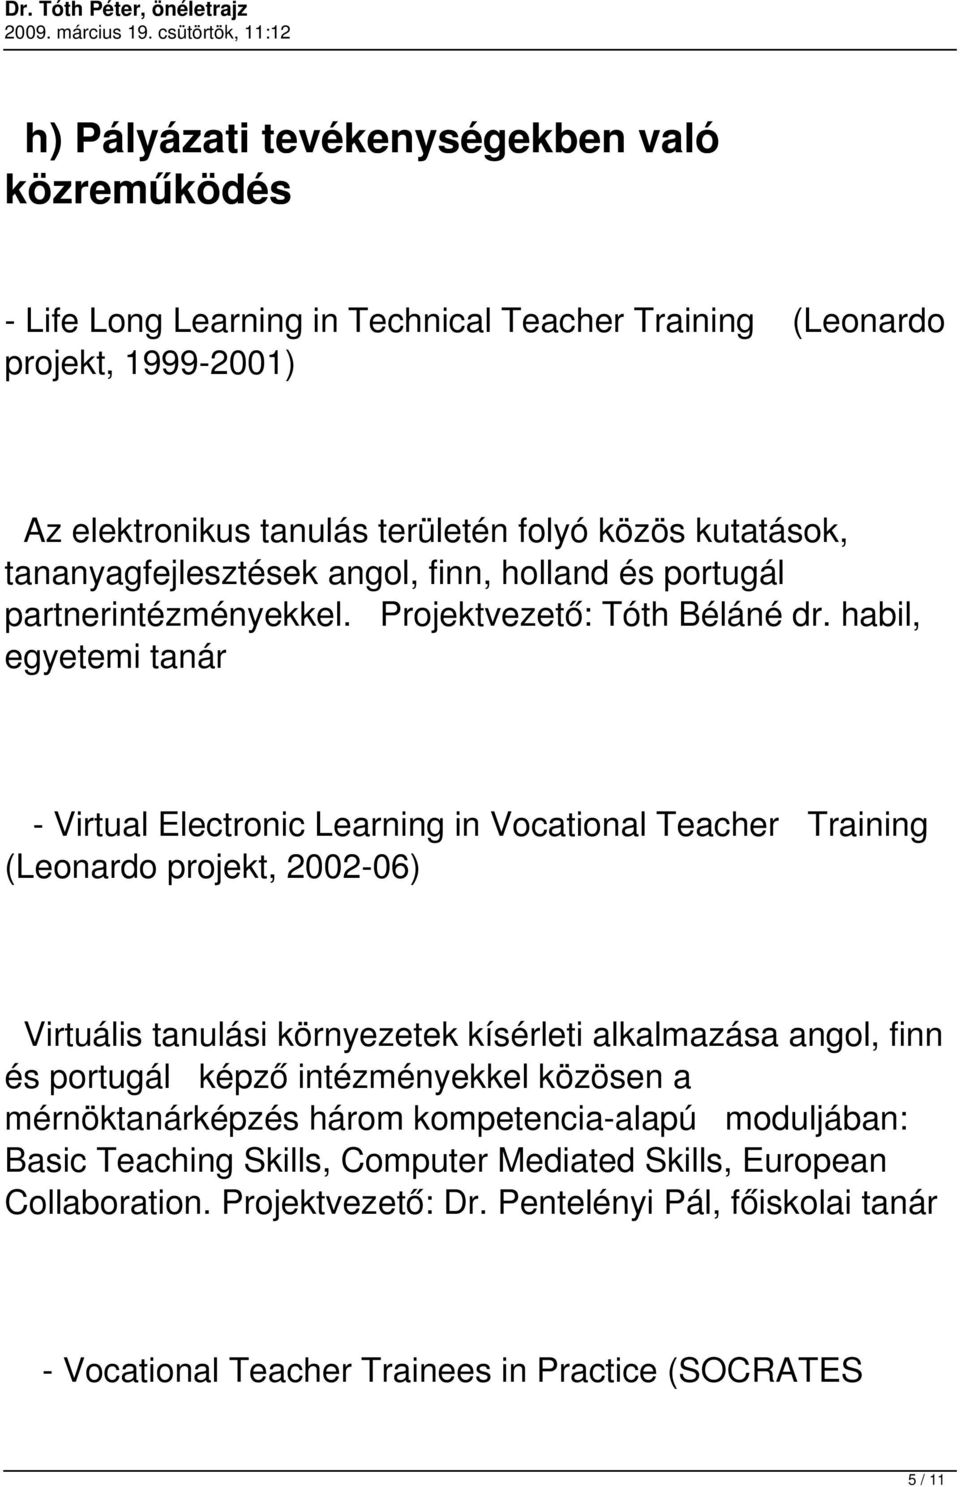 habil, egyetemi tanár - Virtual Electronic Learning in Vocational Teacher Training (Leonardo projekt, 2002-06) Virtuális tanulási környezetek kísérleti alkalmazása angol, finn és portugál